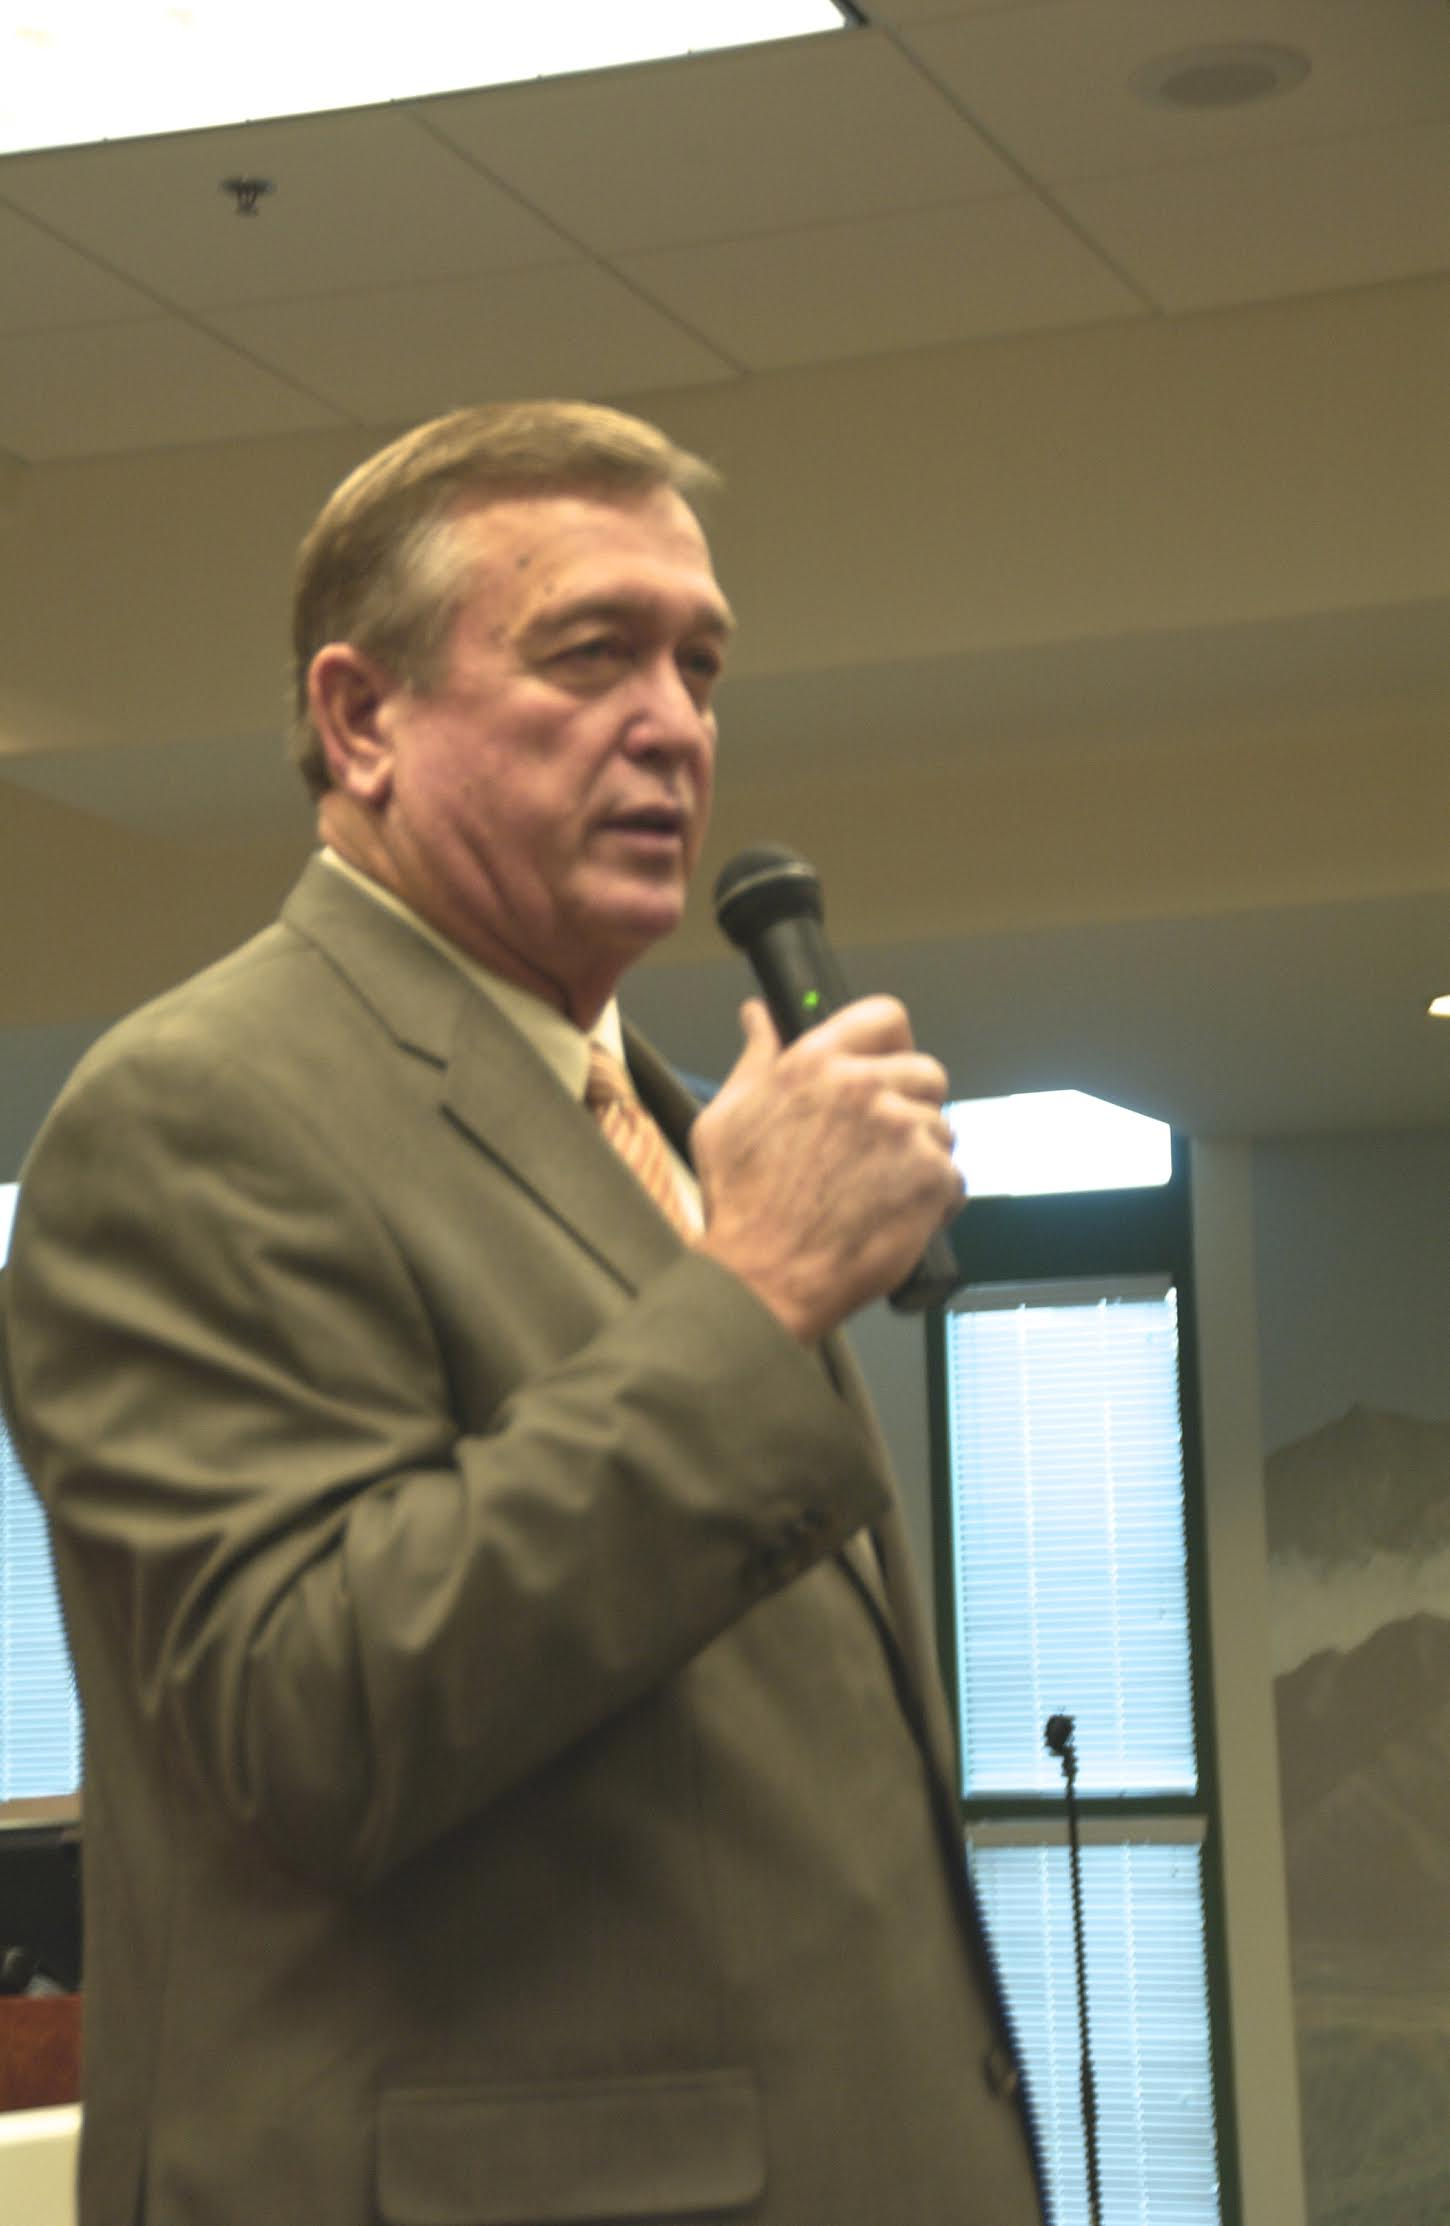 Internal Poll Shows Cresent Hardy Leading Potential Challengers